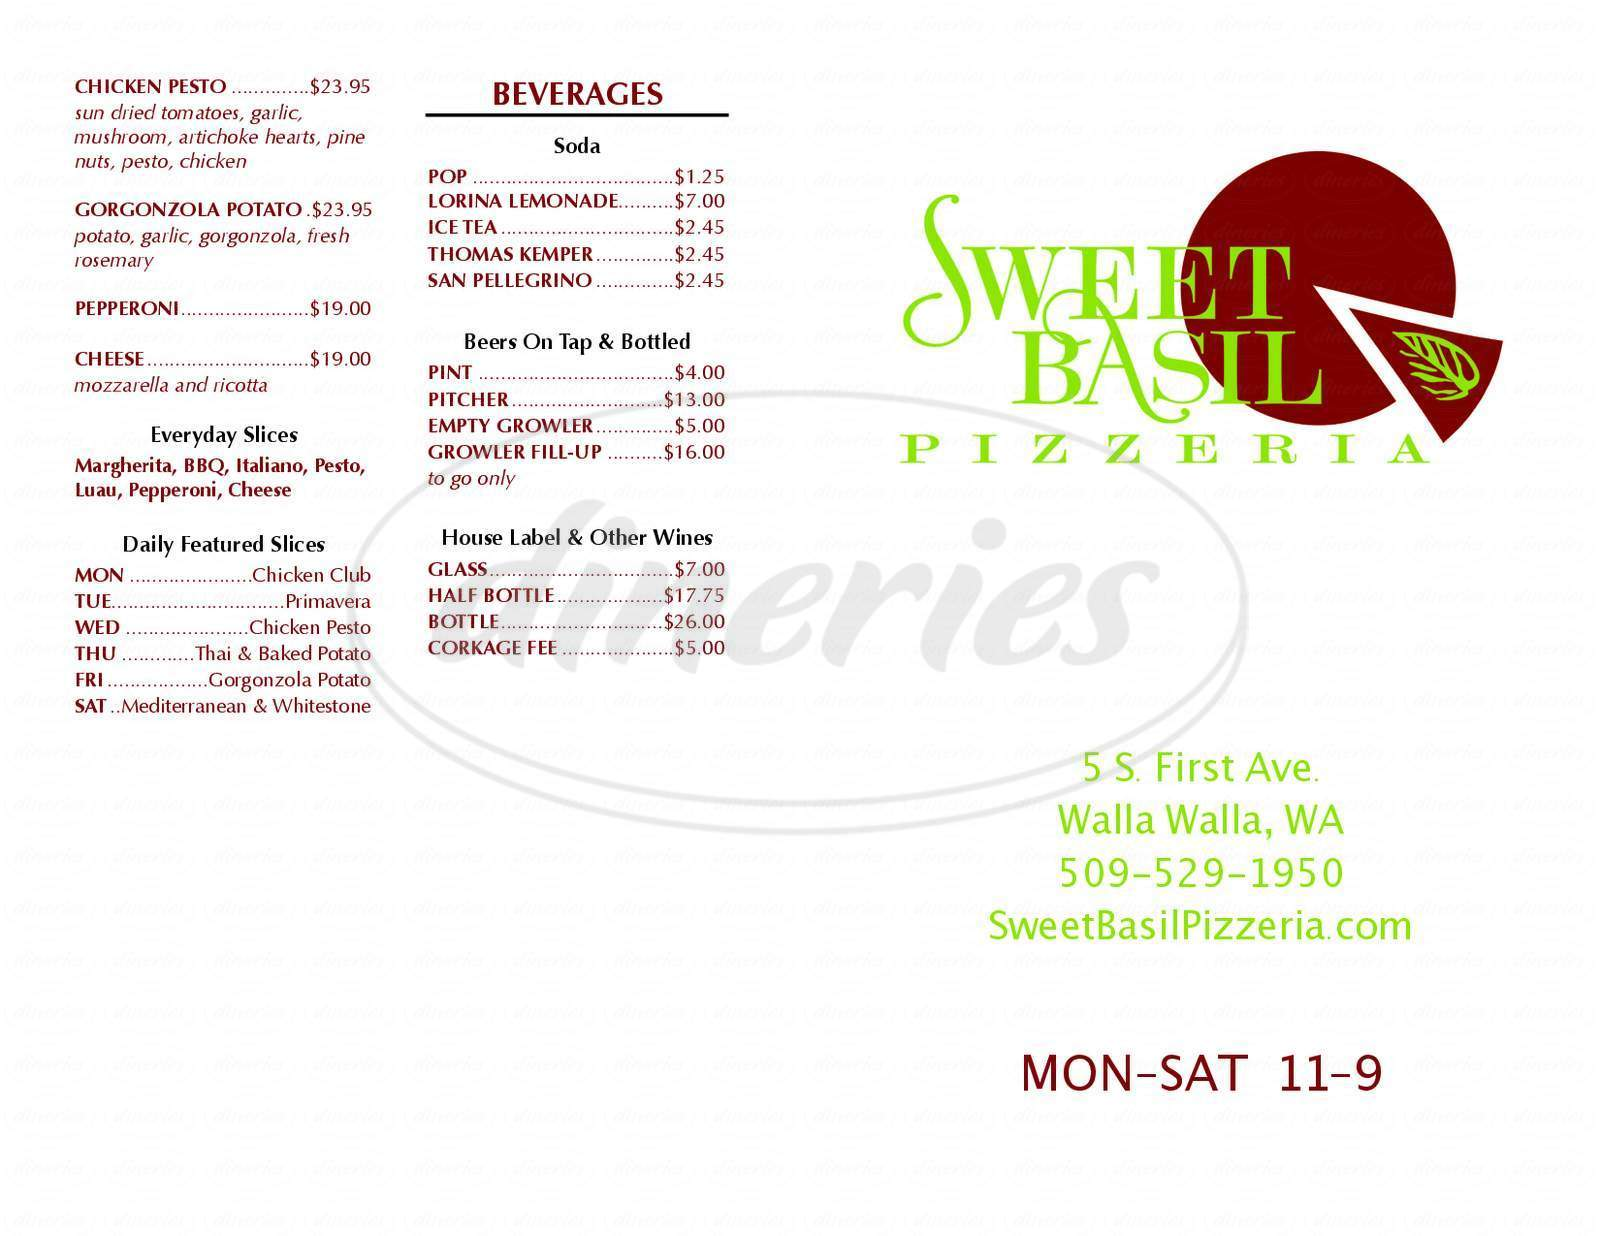 menu for Sweet Basil Pizzeria